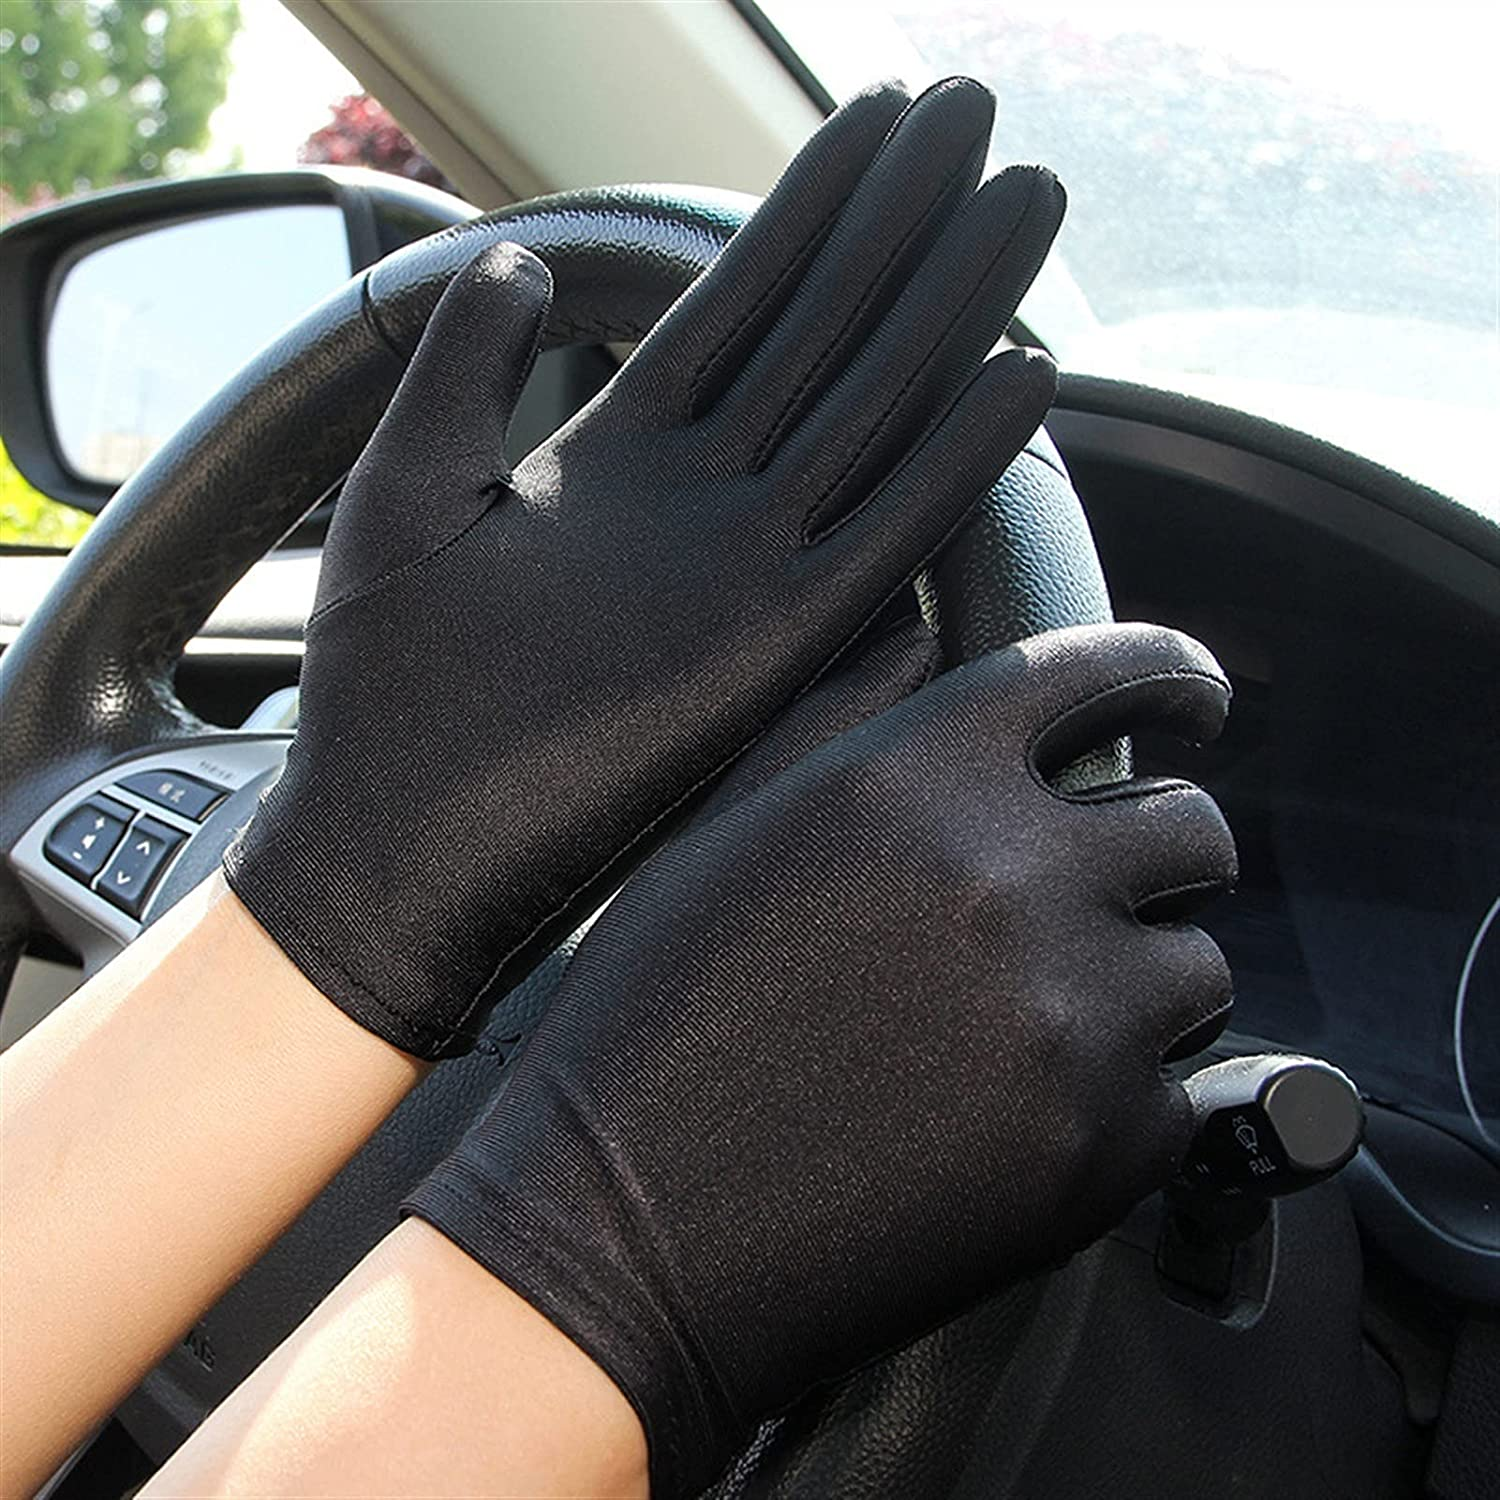 lkpoijuh Summer Gloves Women Men Mittens Sun Protection White Black Thin Short Stretch Gloves (Color : 2, Gloves Size : One Size)